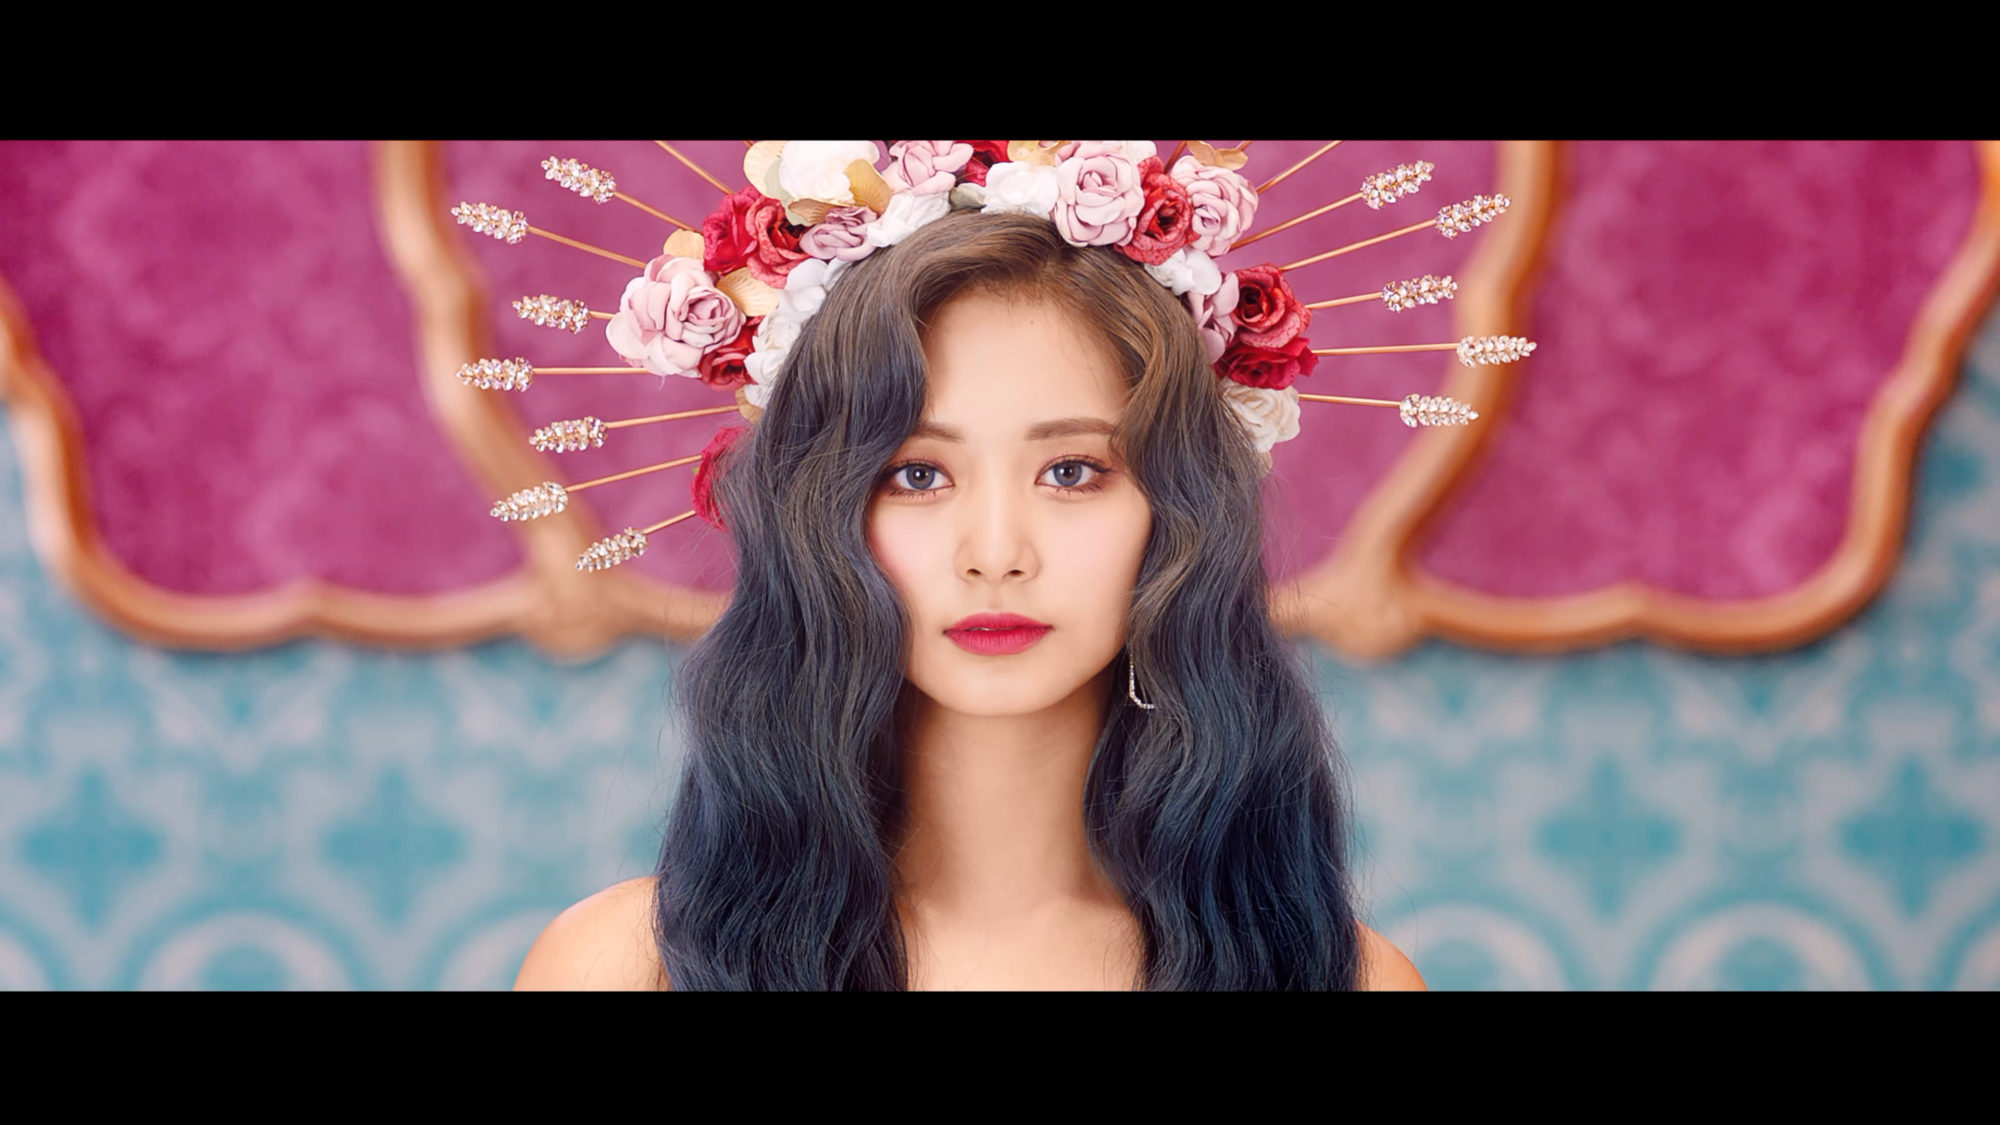 Twice Tzuyu Feel Special Teaser